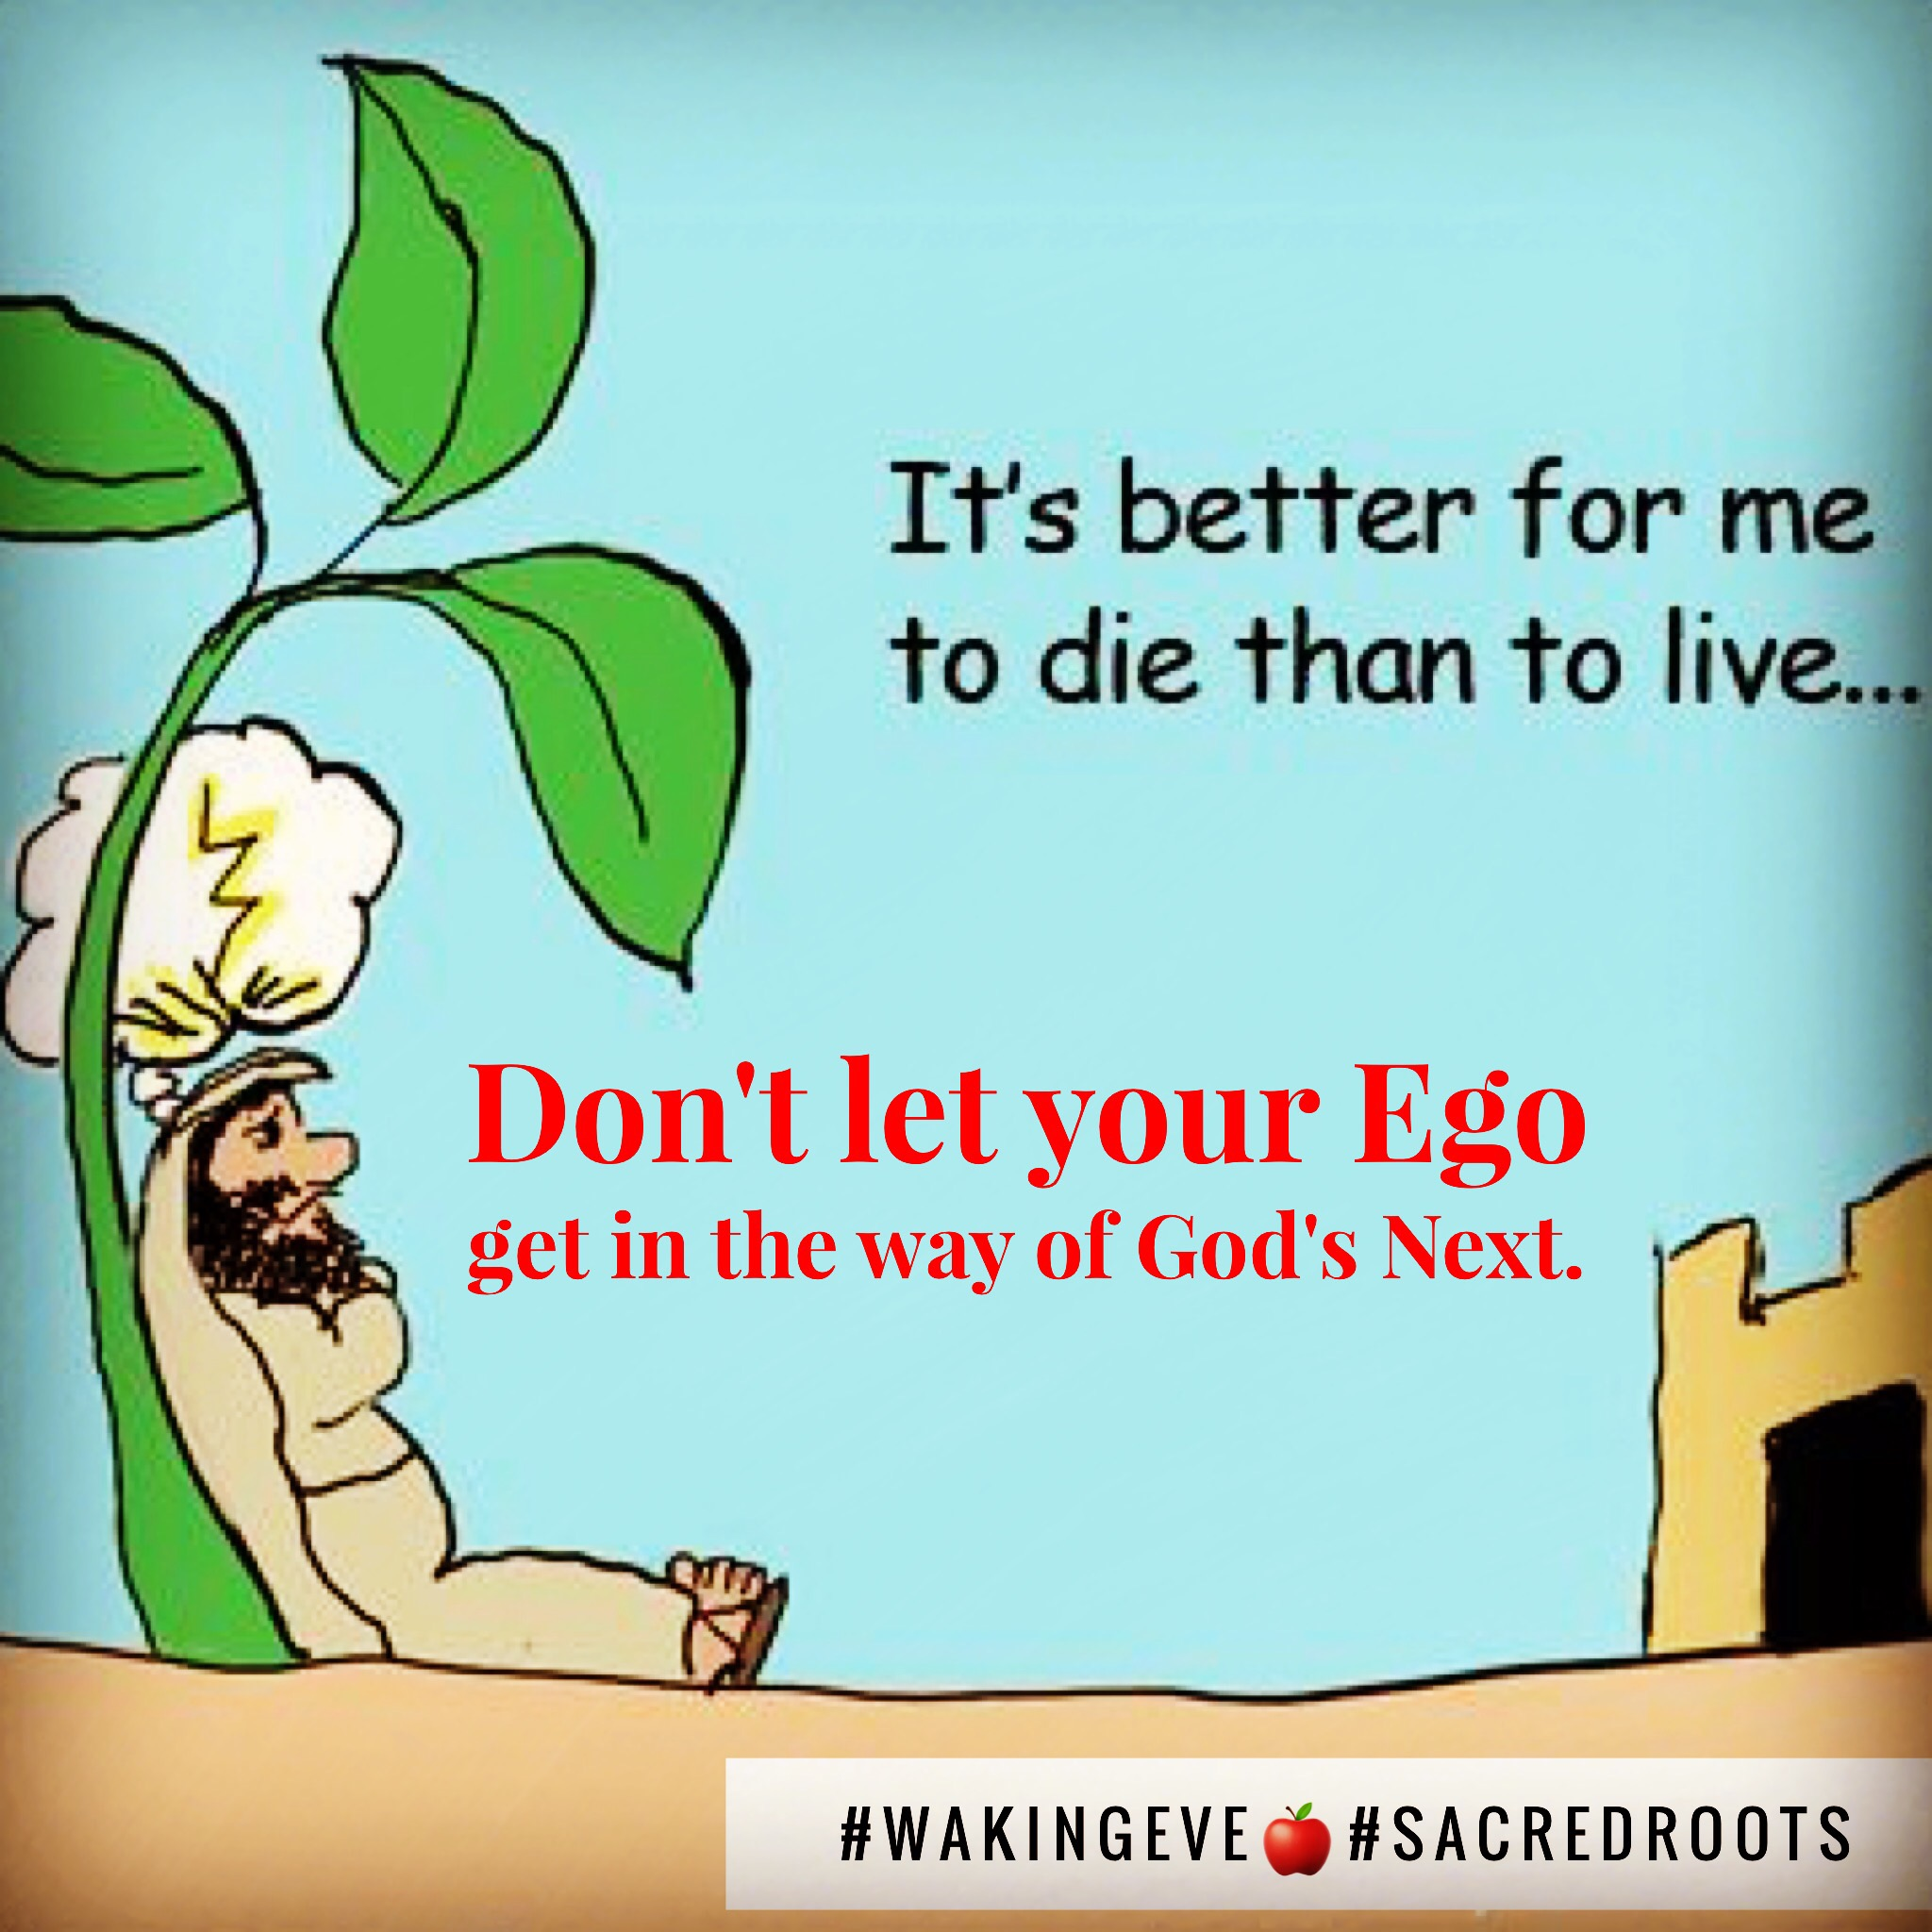 Don't let your Ego get in the way of God's Next